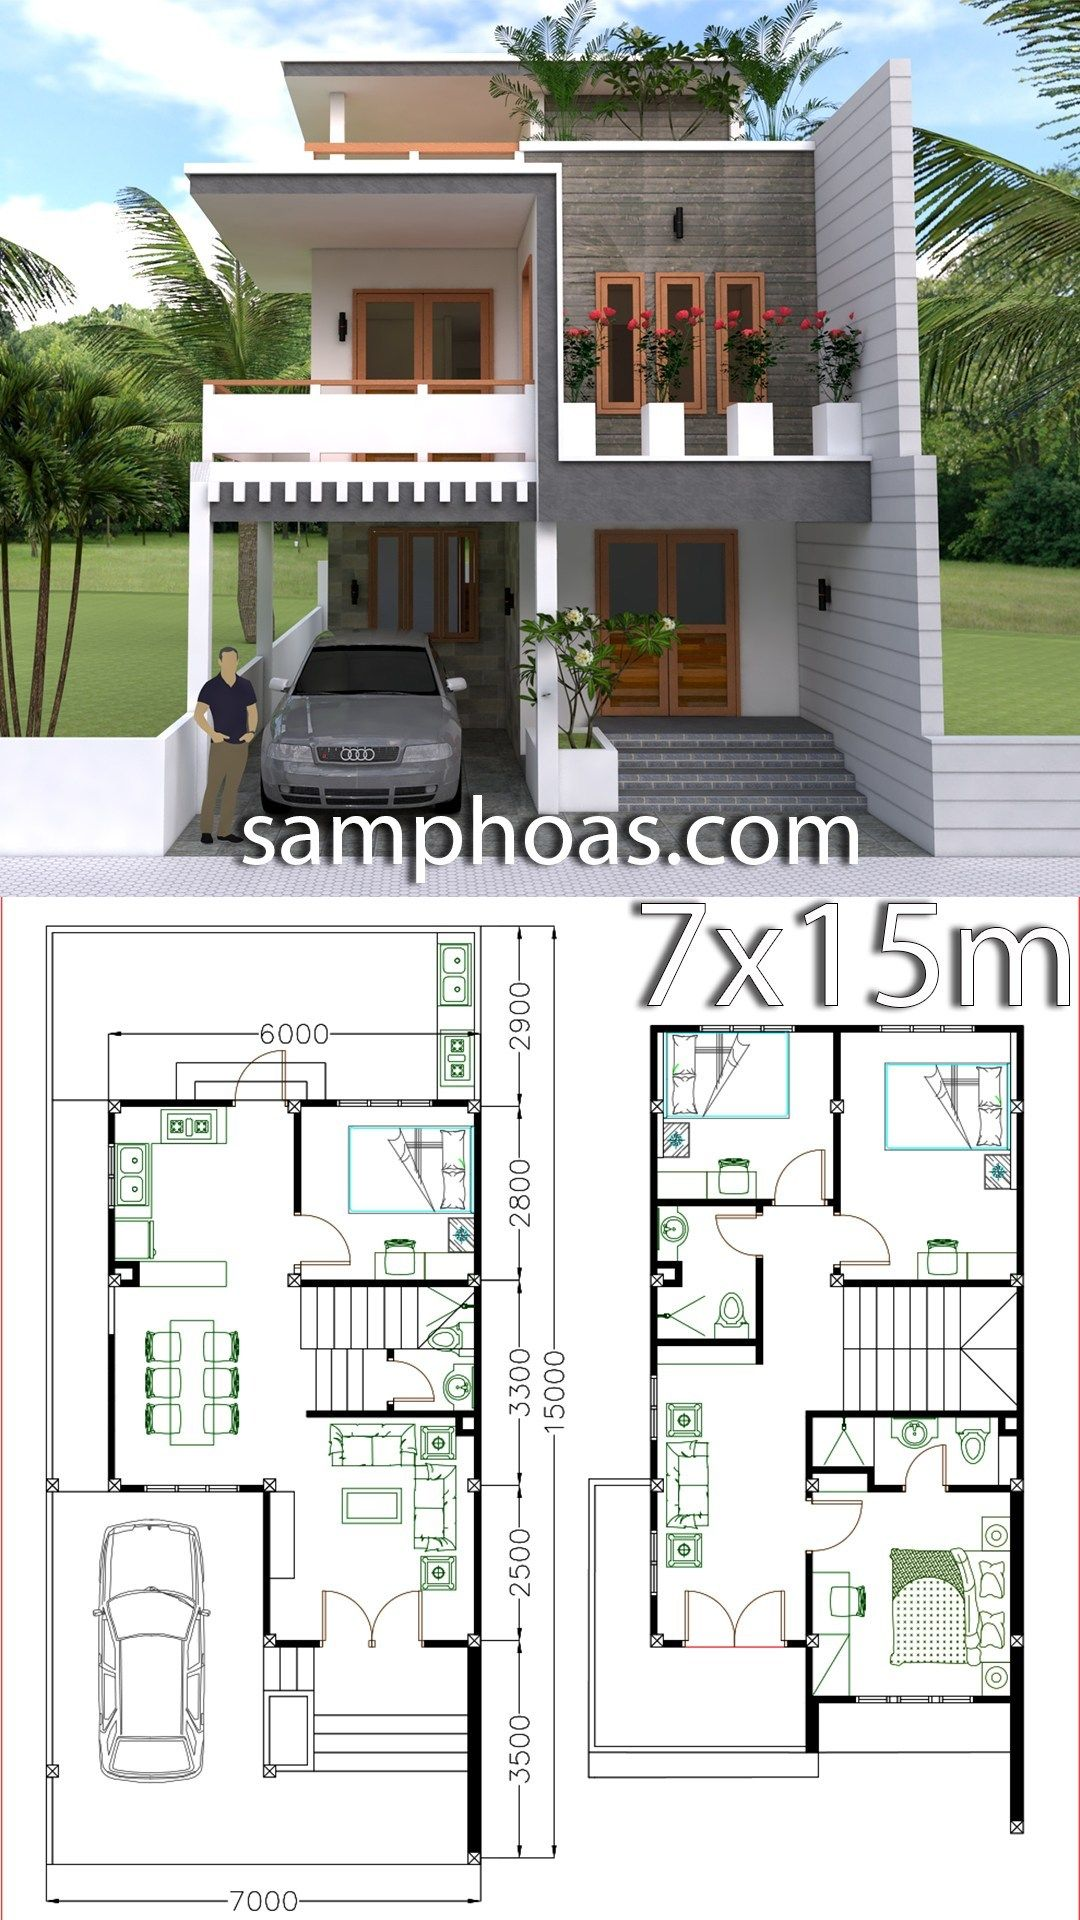 Home Design Plan 7x15m With 4 Bedrooms Duplex House